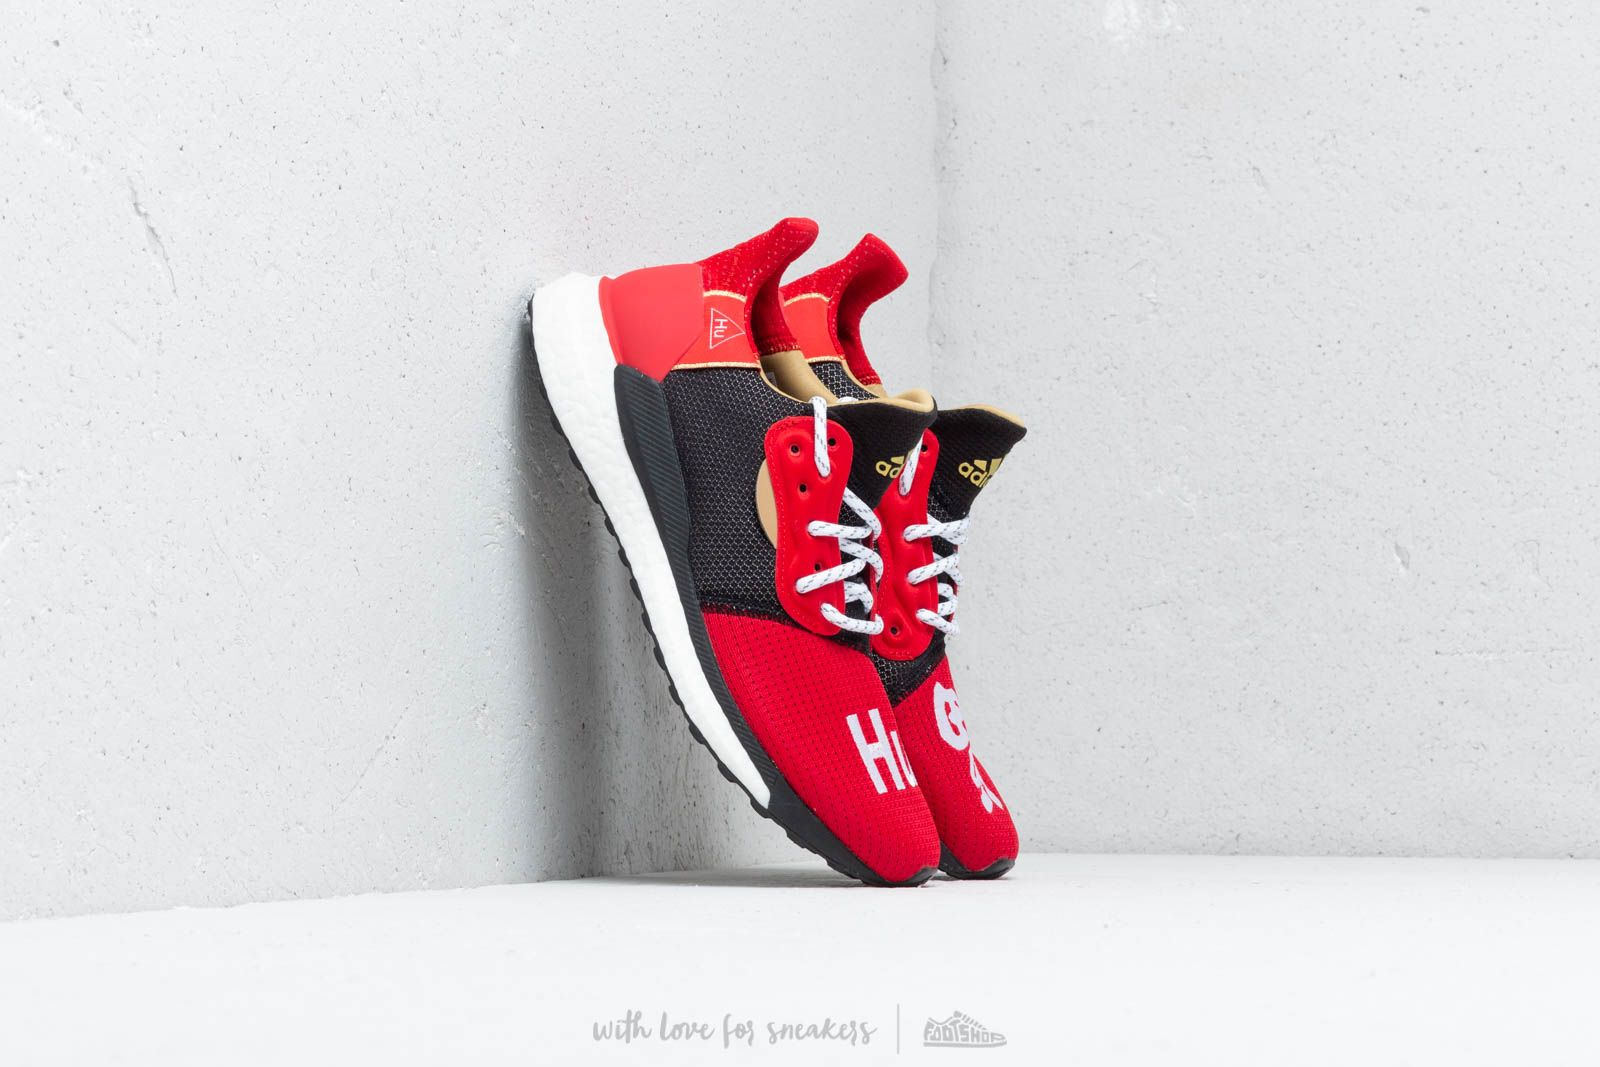 827a4a90c adidas x Pharrell Williams Solar HU Glide CNY Red  Core Black at a great  price